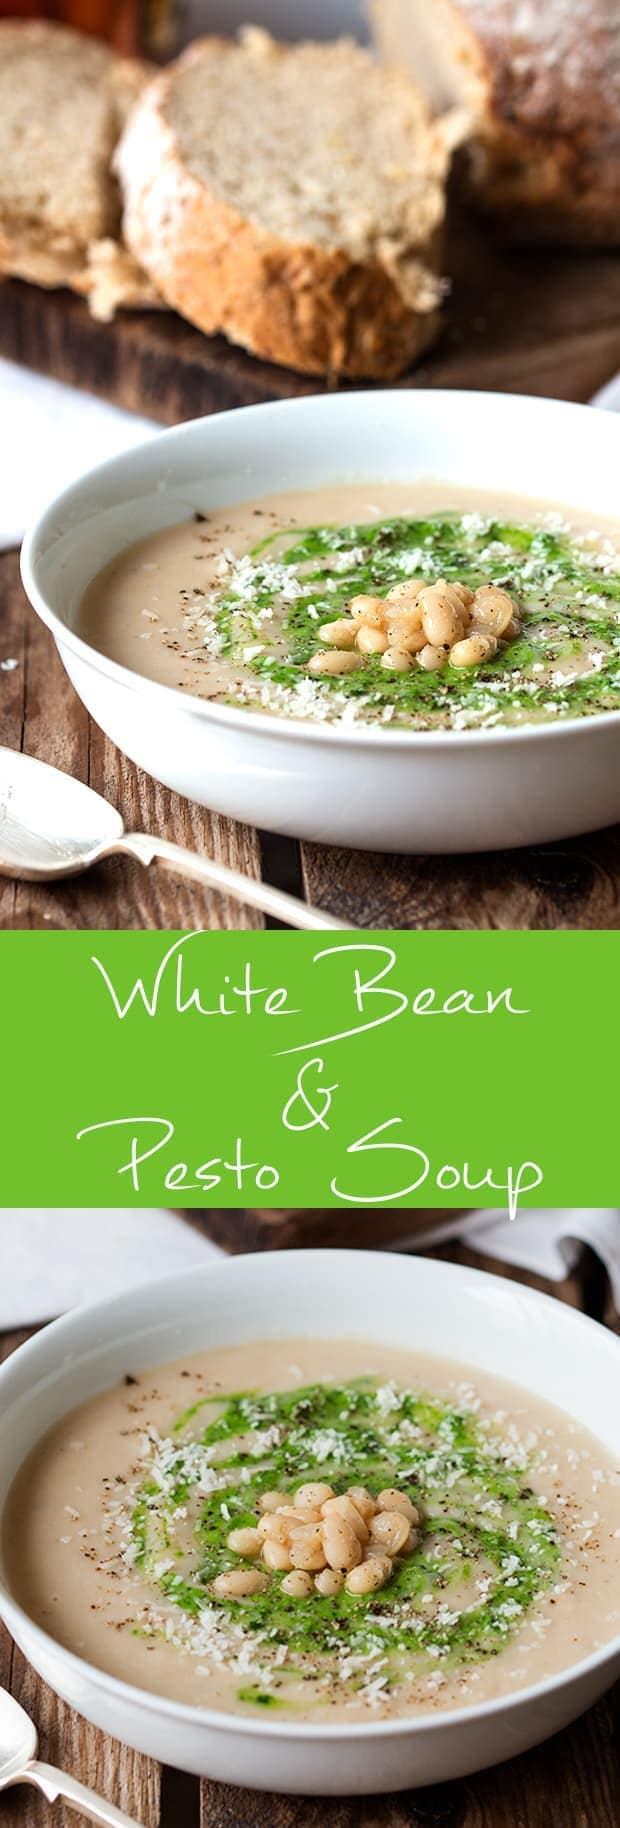 A warming, creamy, white bean soup, swirled with pesto and parmesan.